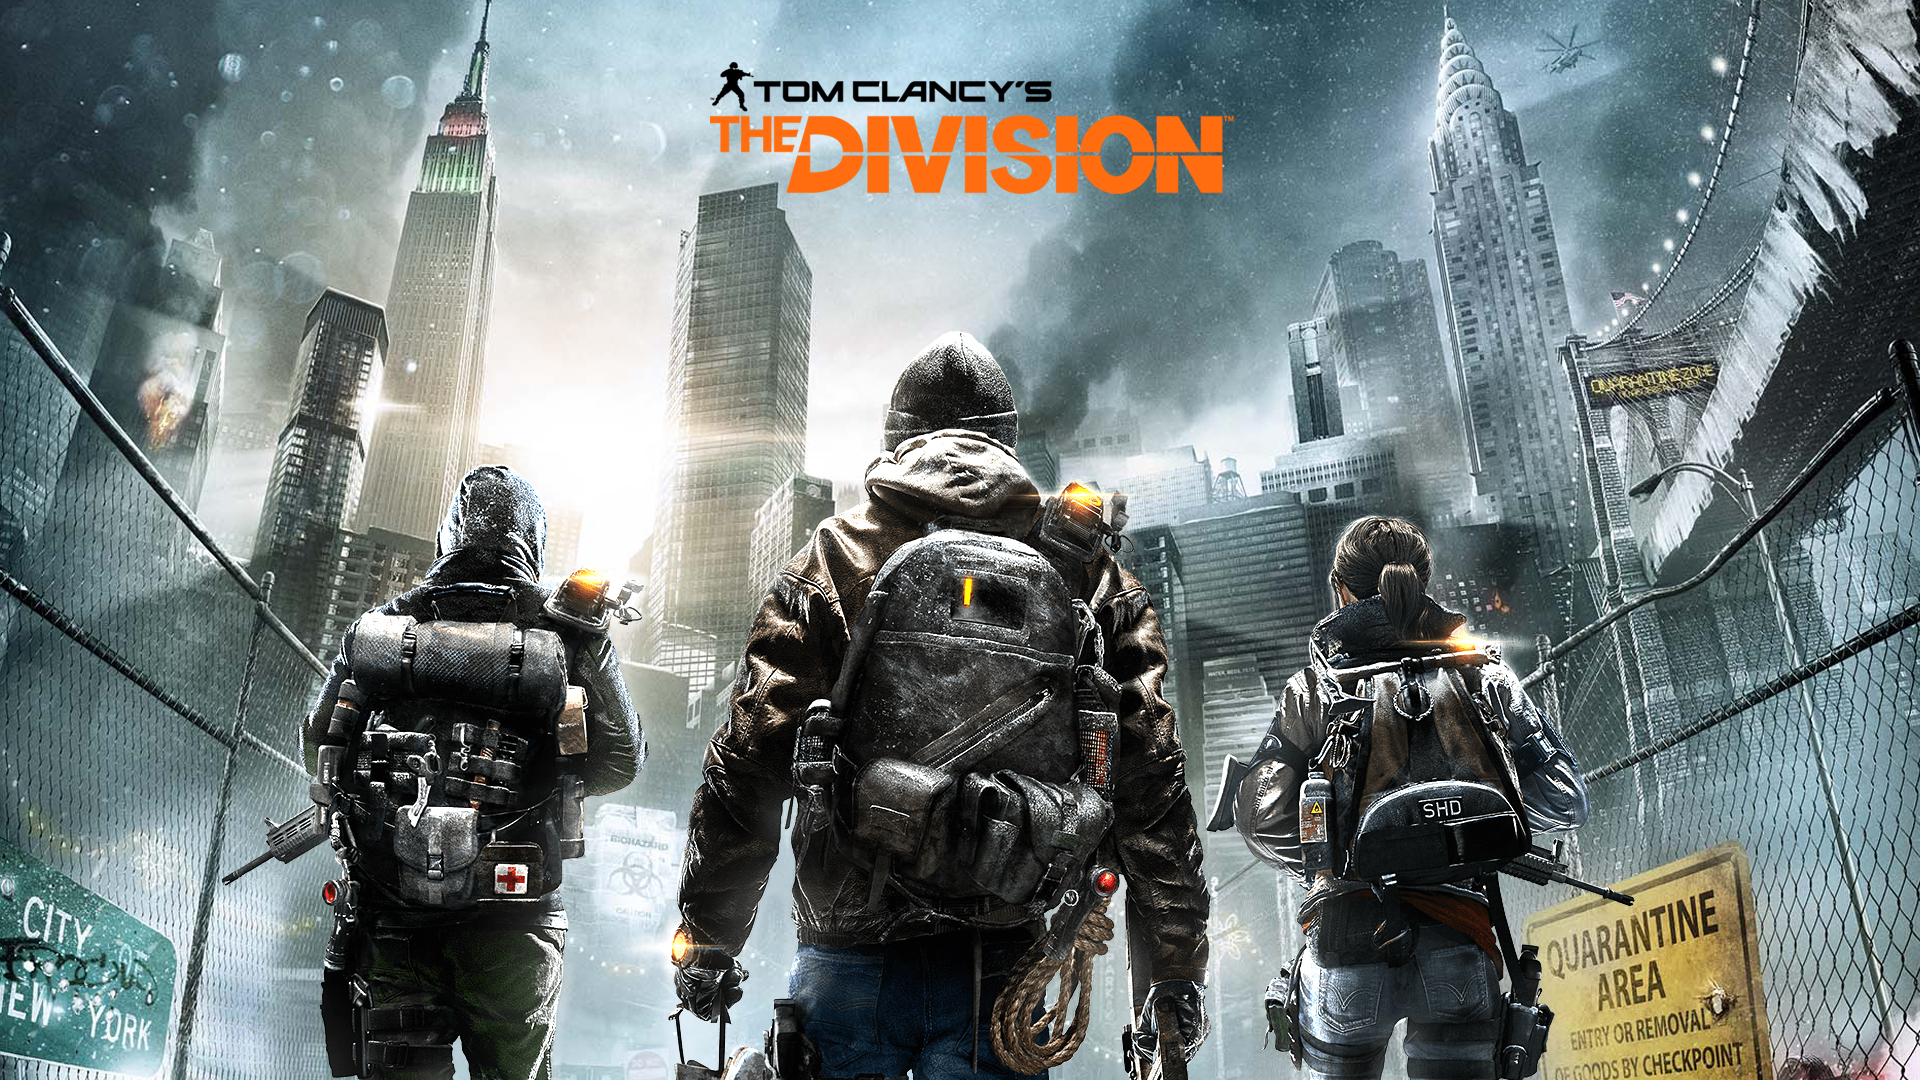 Tom Clancy's The Division PC Crack + License Key Free Download 2020